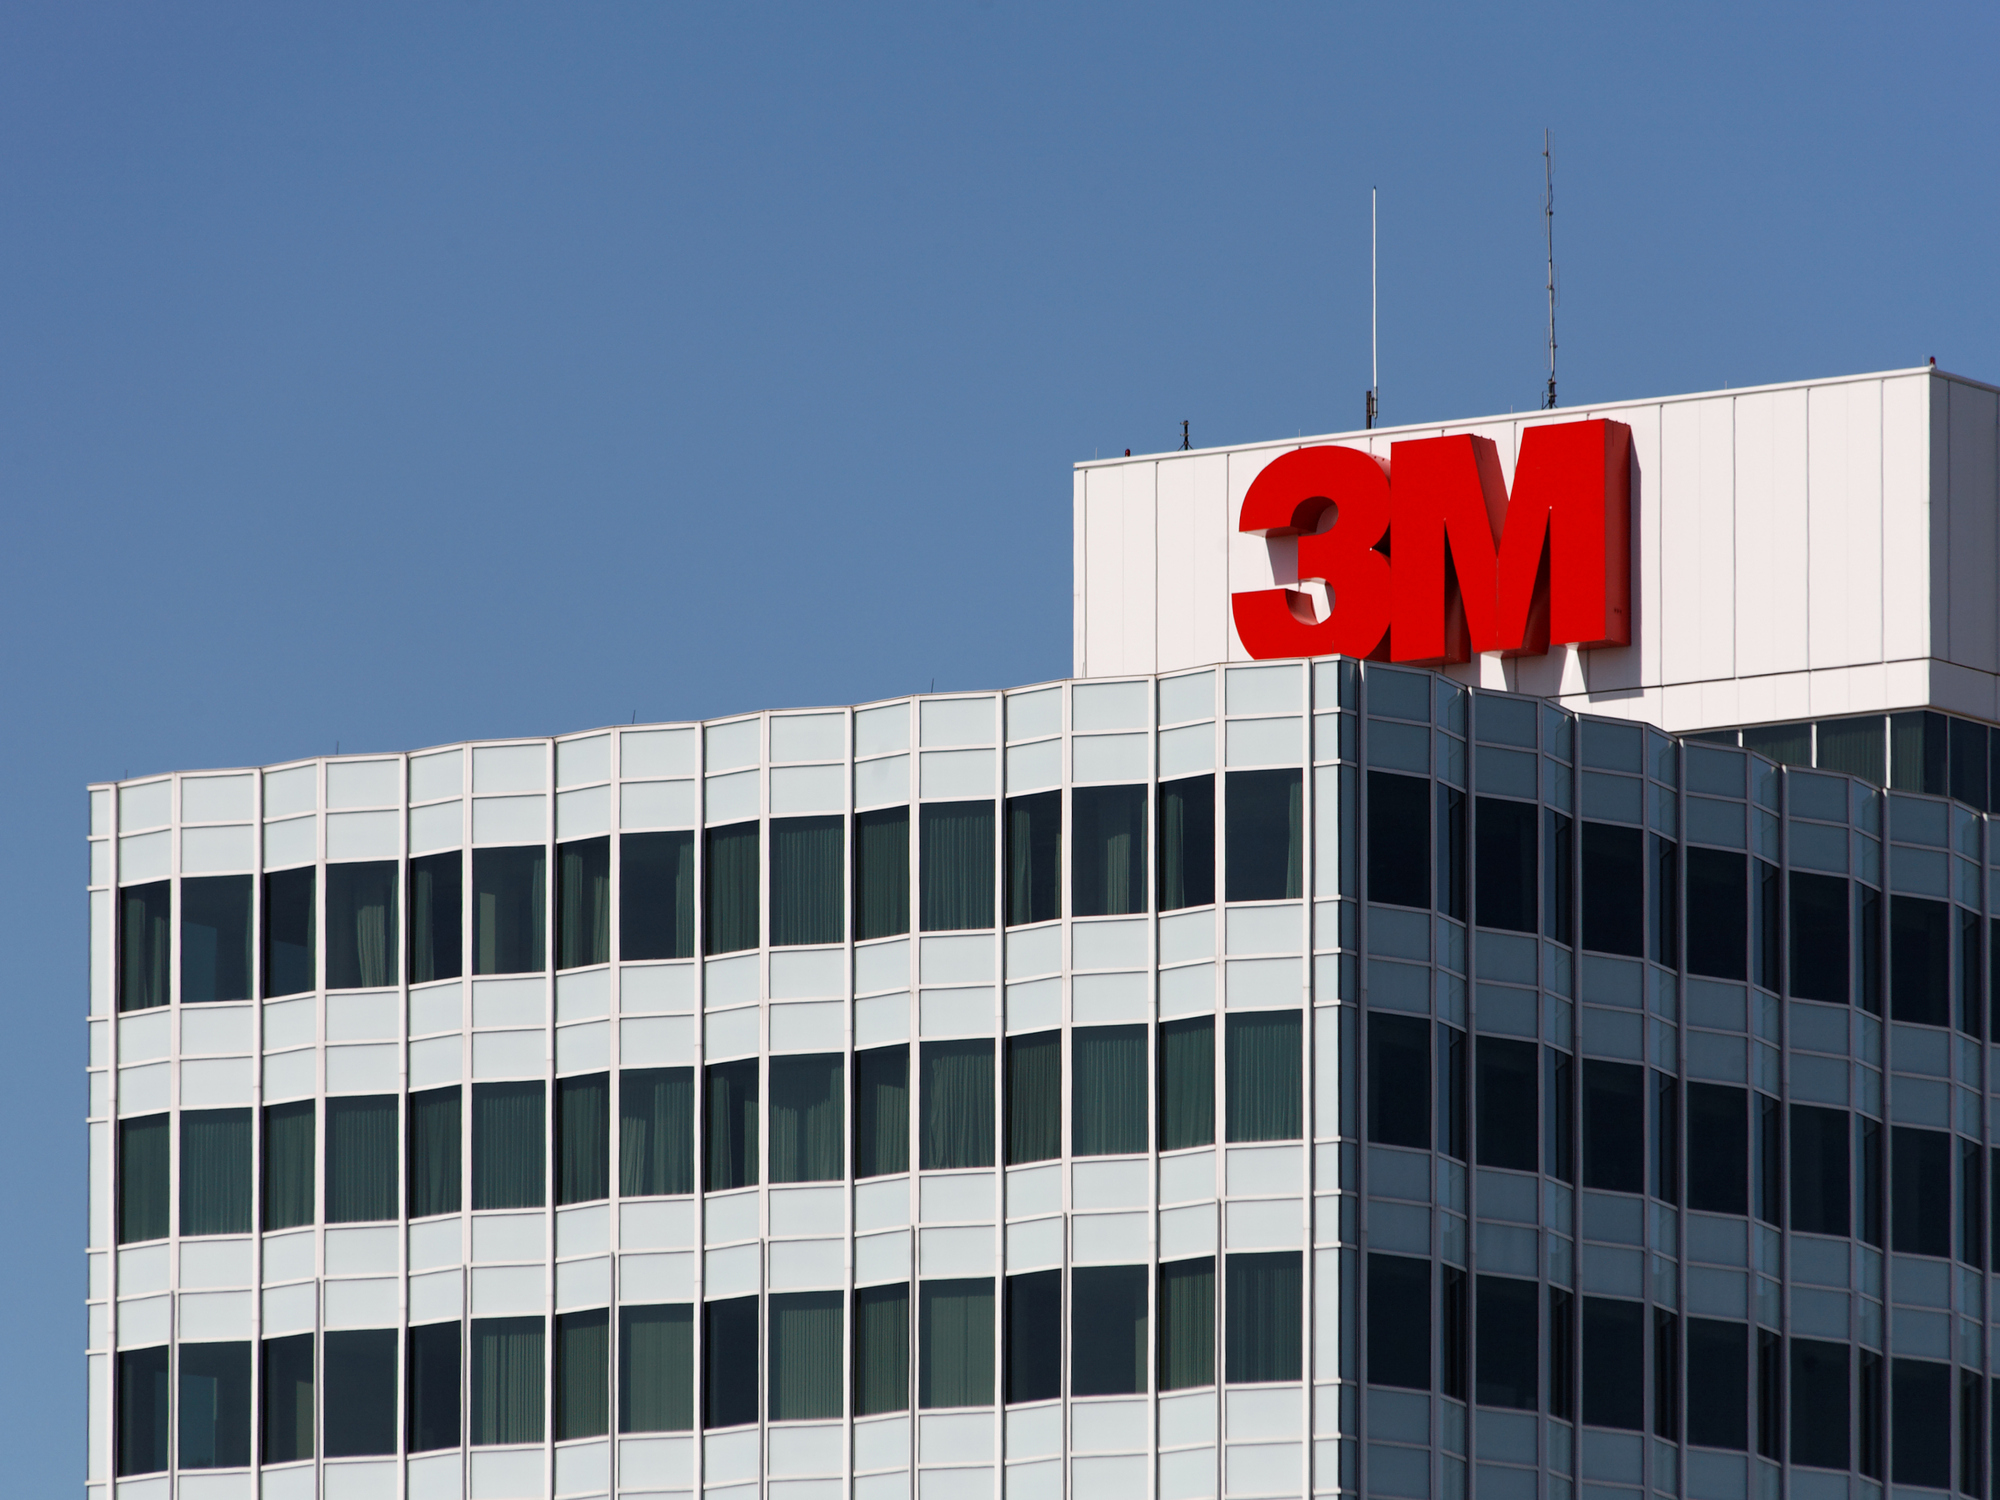 Photo of the 3M headquarters in St. Paul, Minnesota